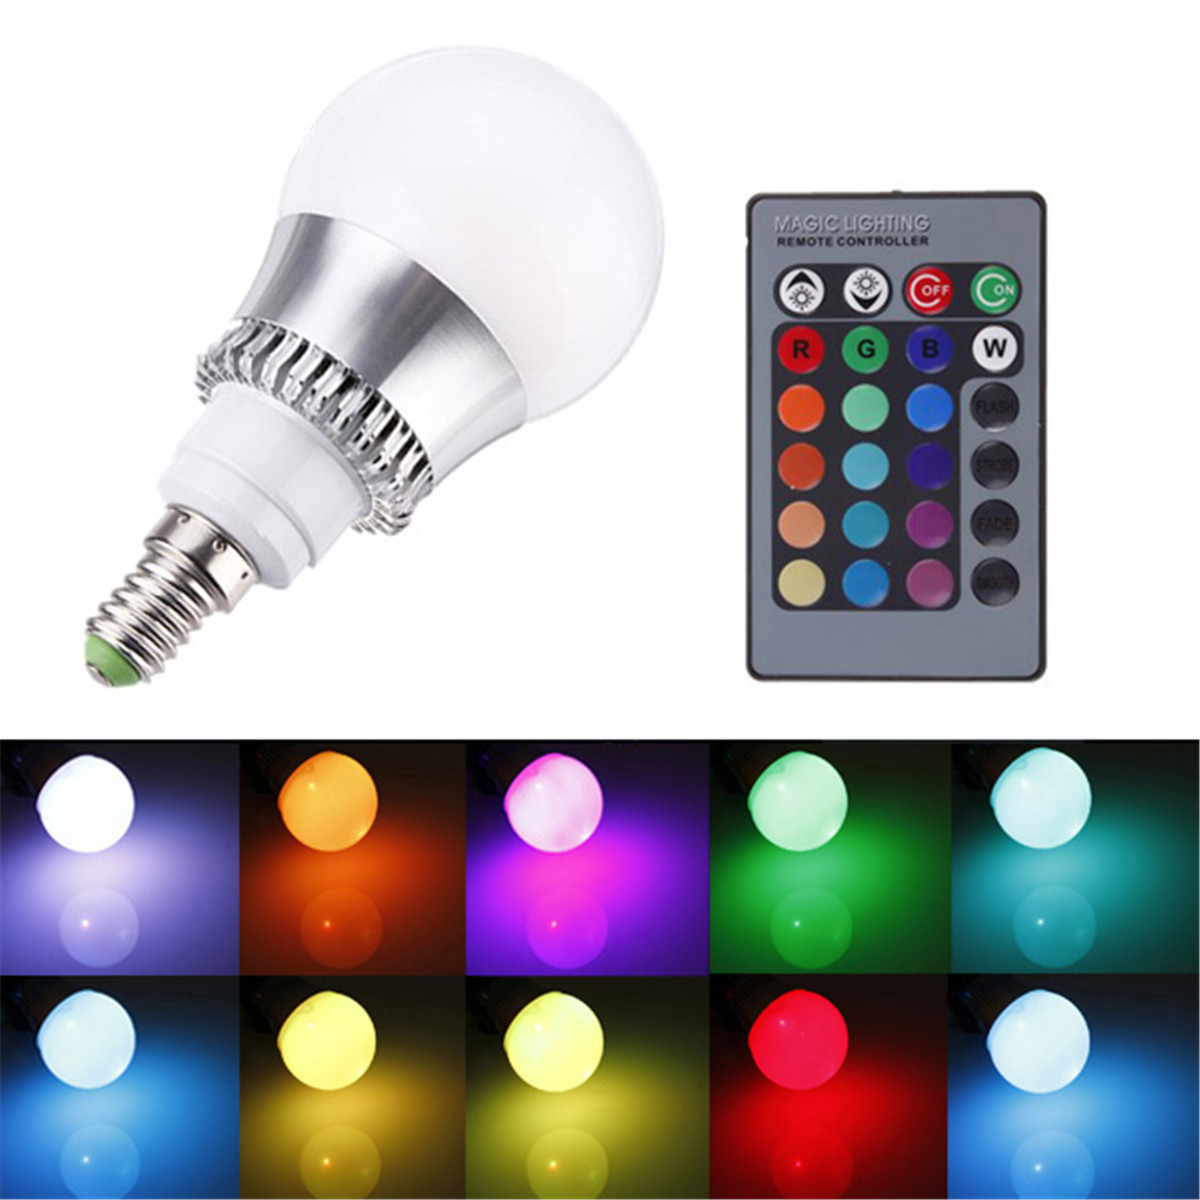 3 5 10w lampada e27 e14 rgb led lampadina faretto multicolore luce controller uk ebay. Black Bedroom Furniture Sets. Home Design Ideas